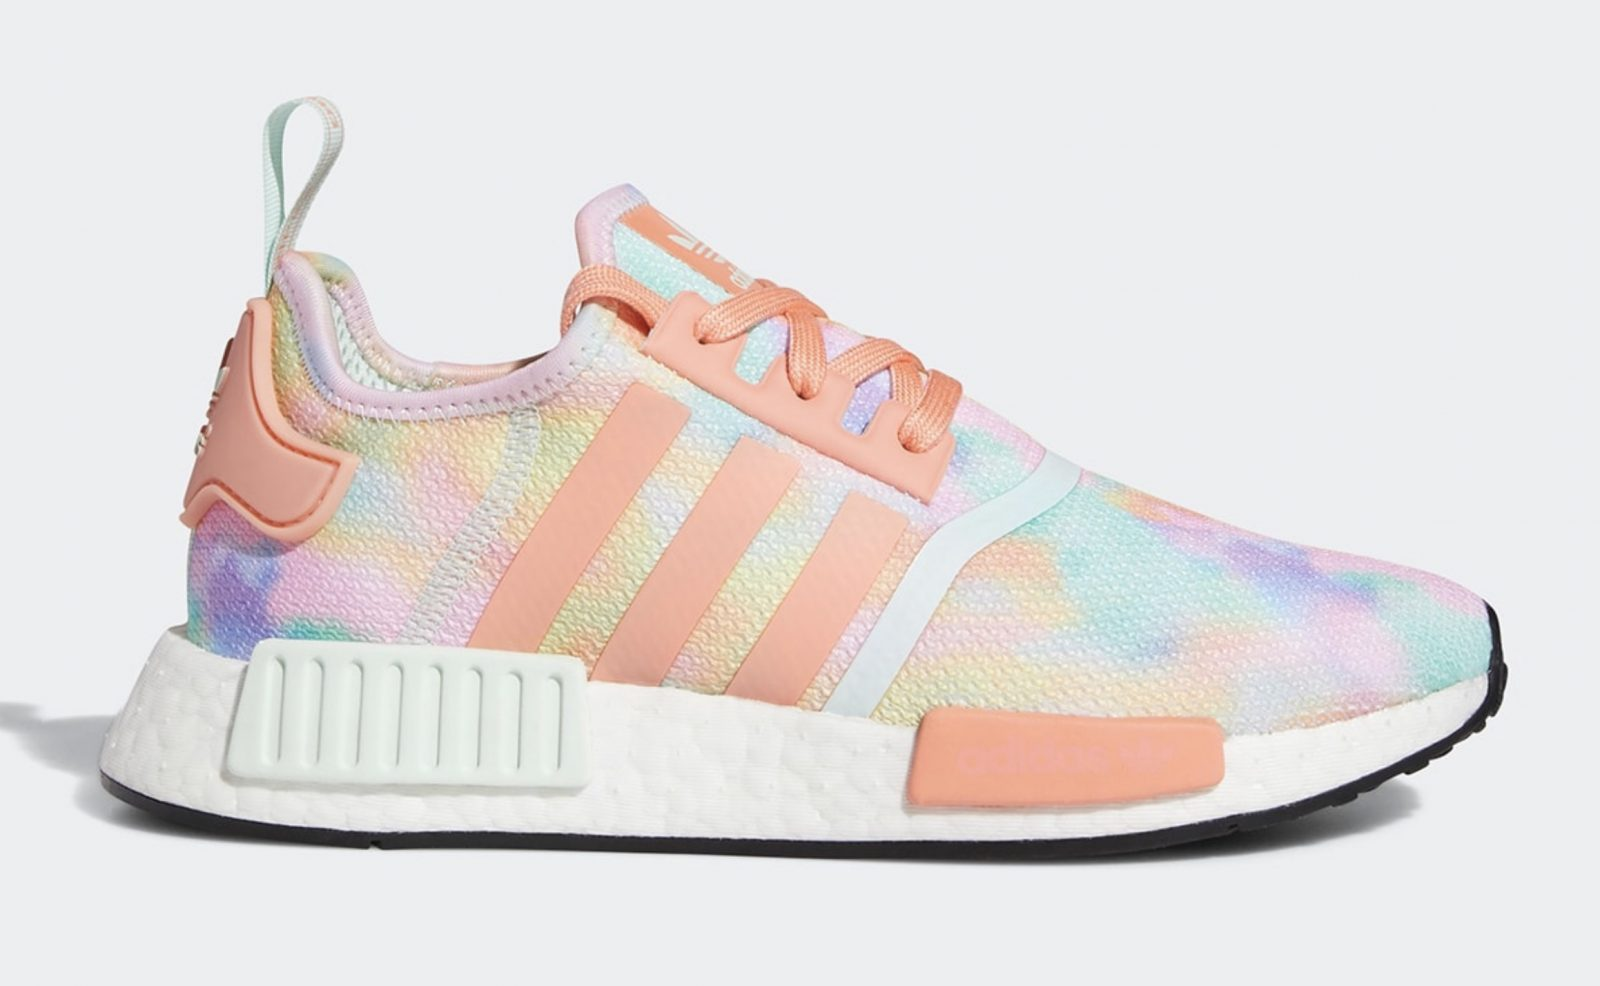 Get Colourful In The Tie-Dyed Upcoming adidas NMD R1 'Easter'